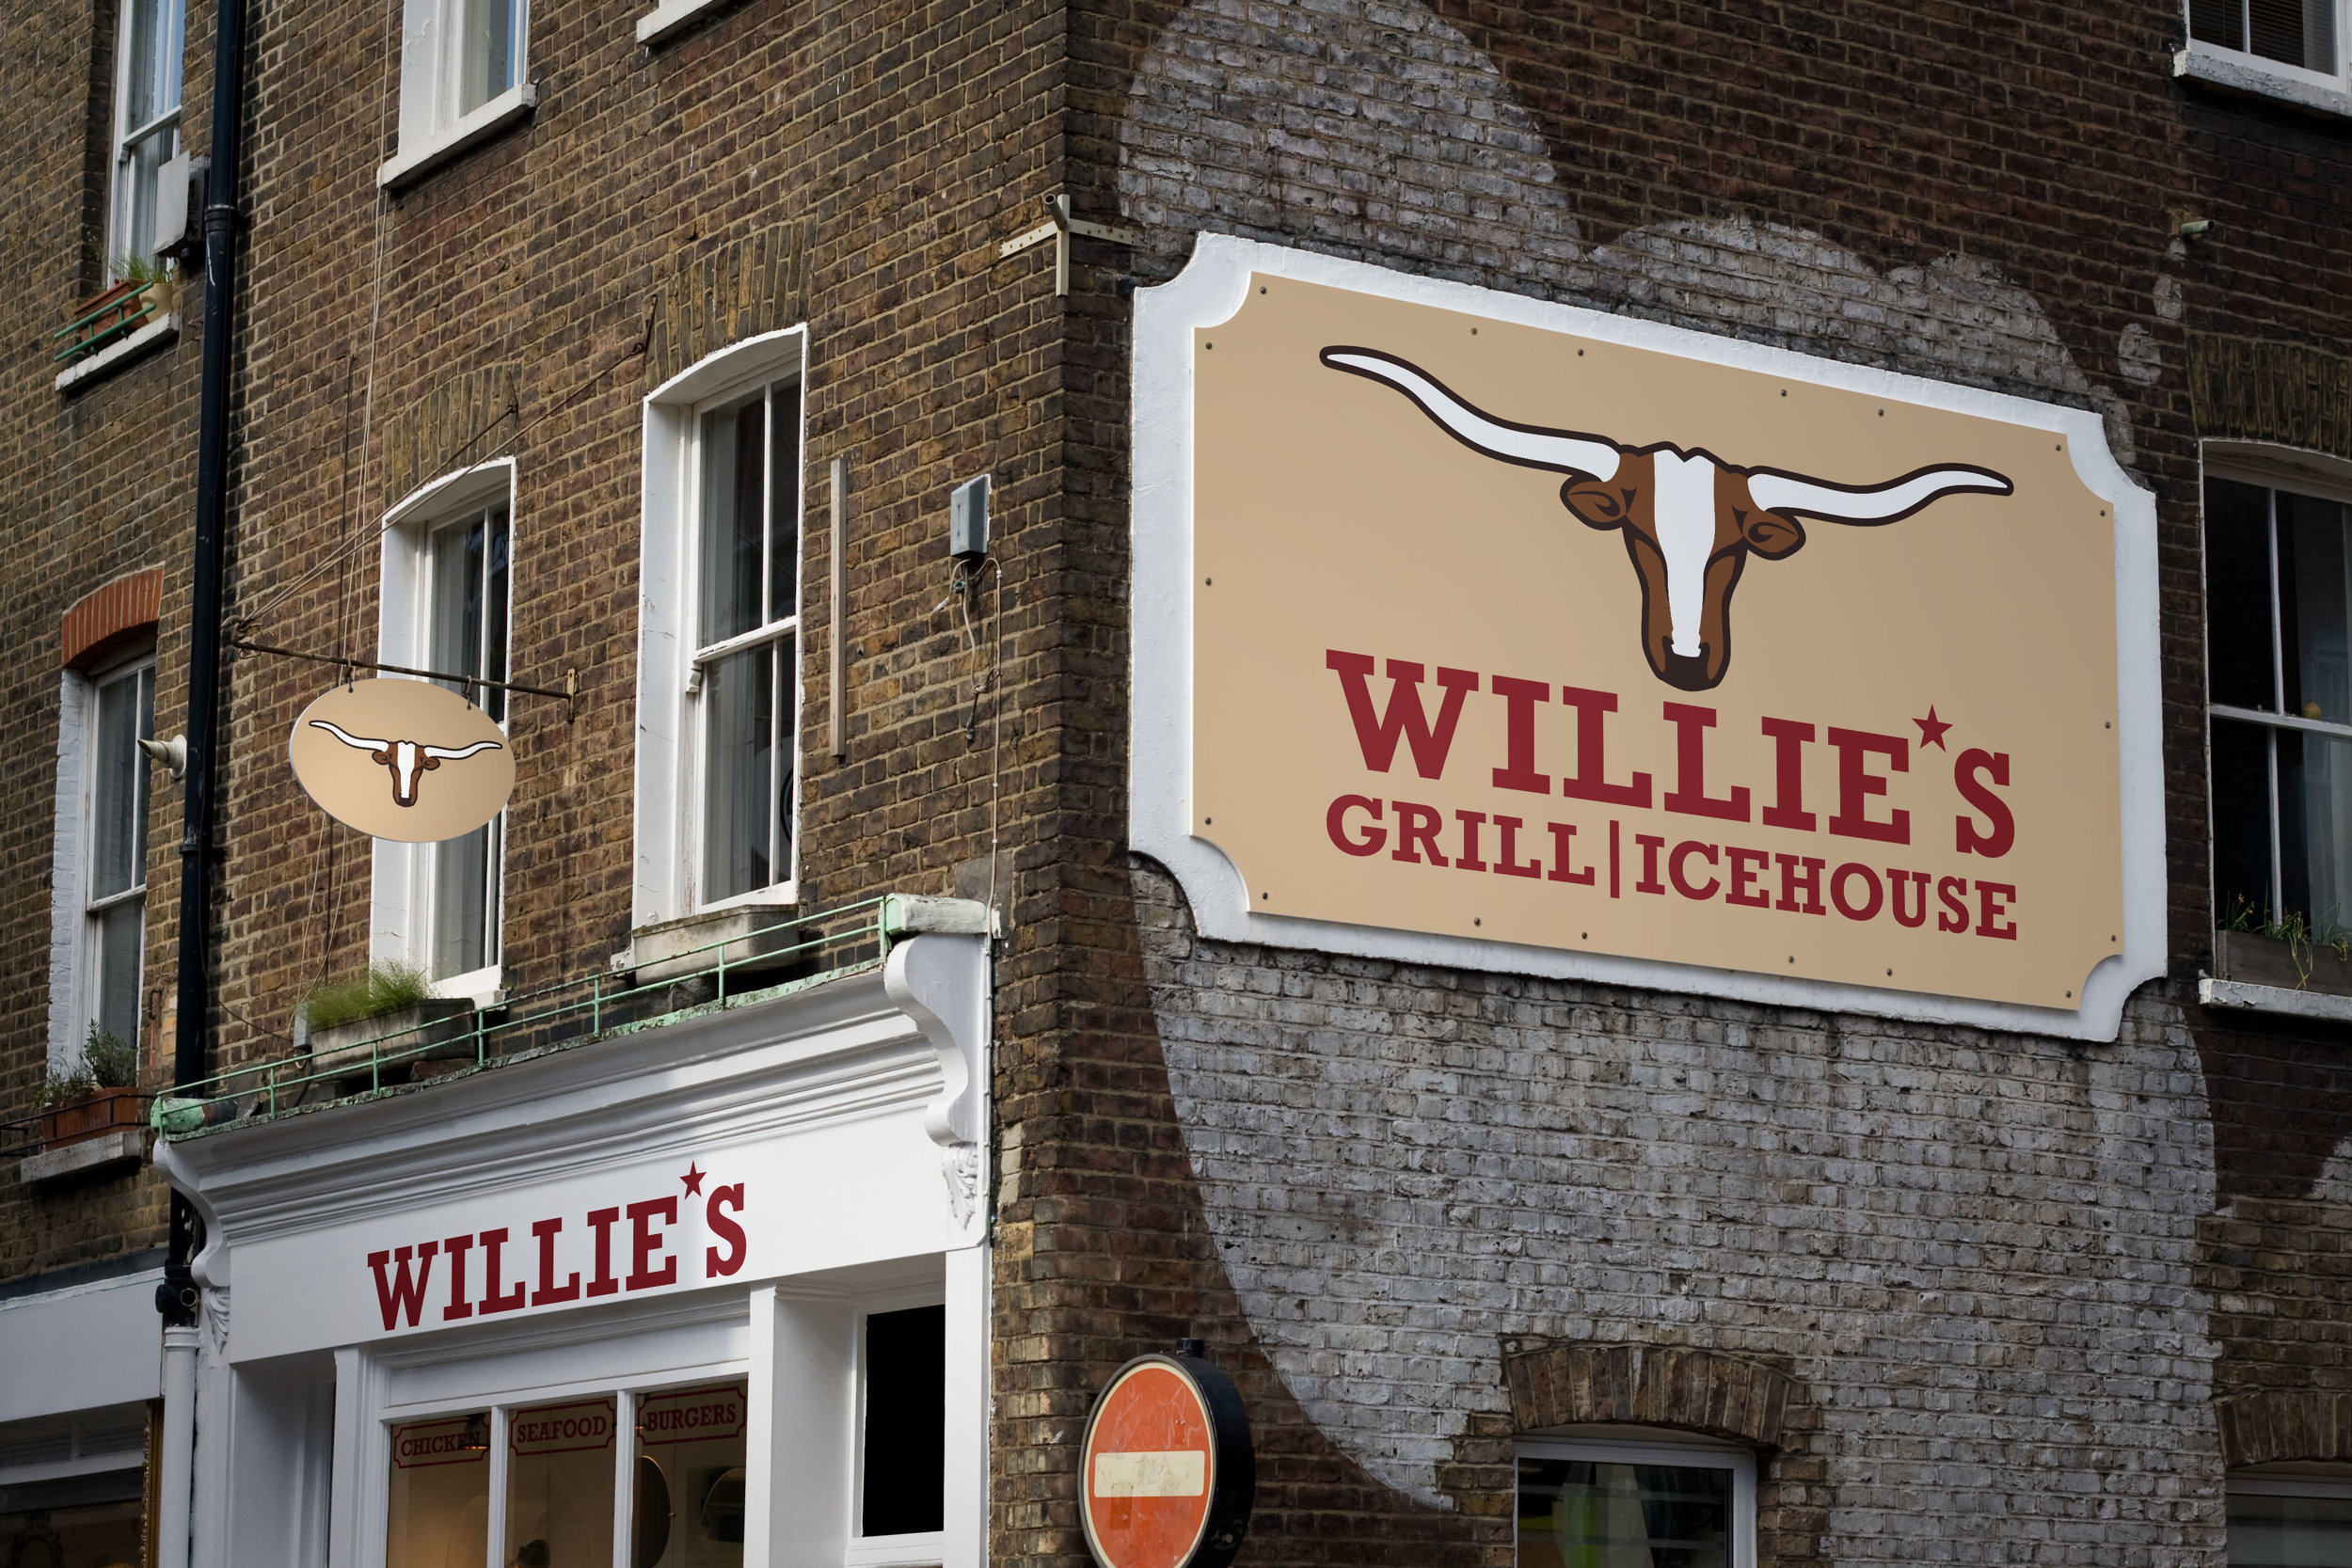 Willie's Grill | Icehouse